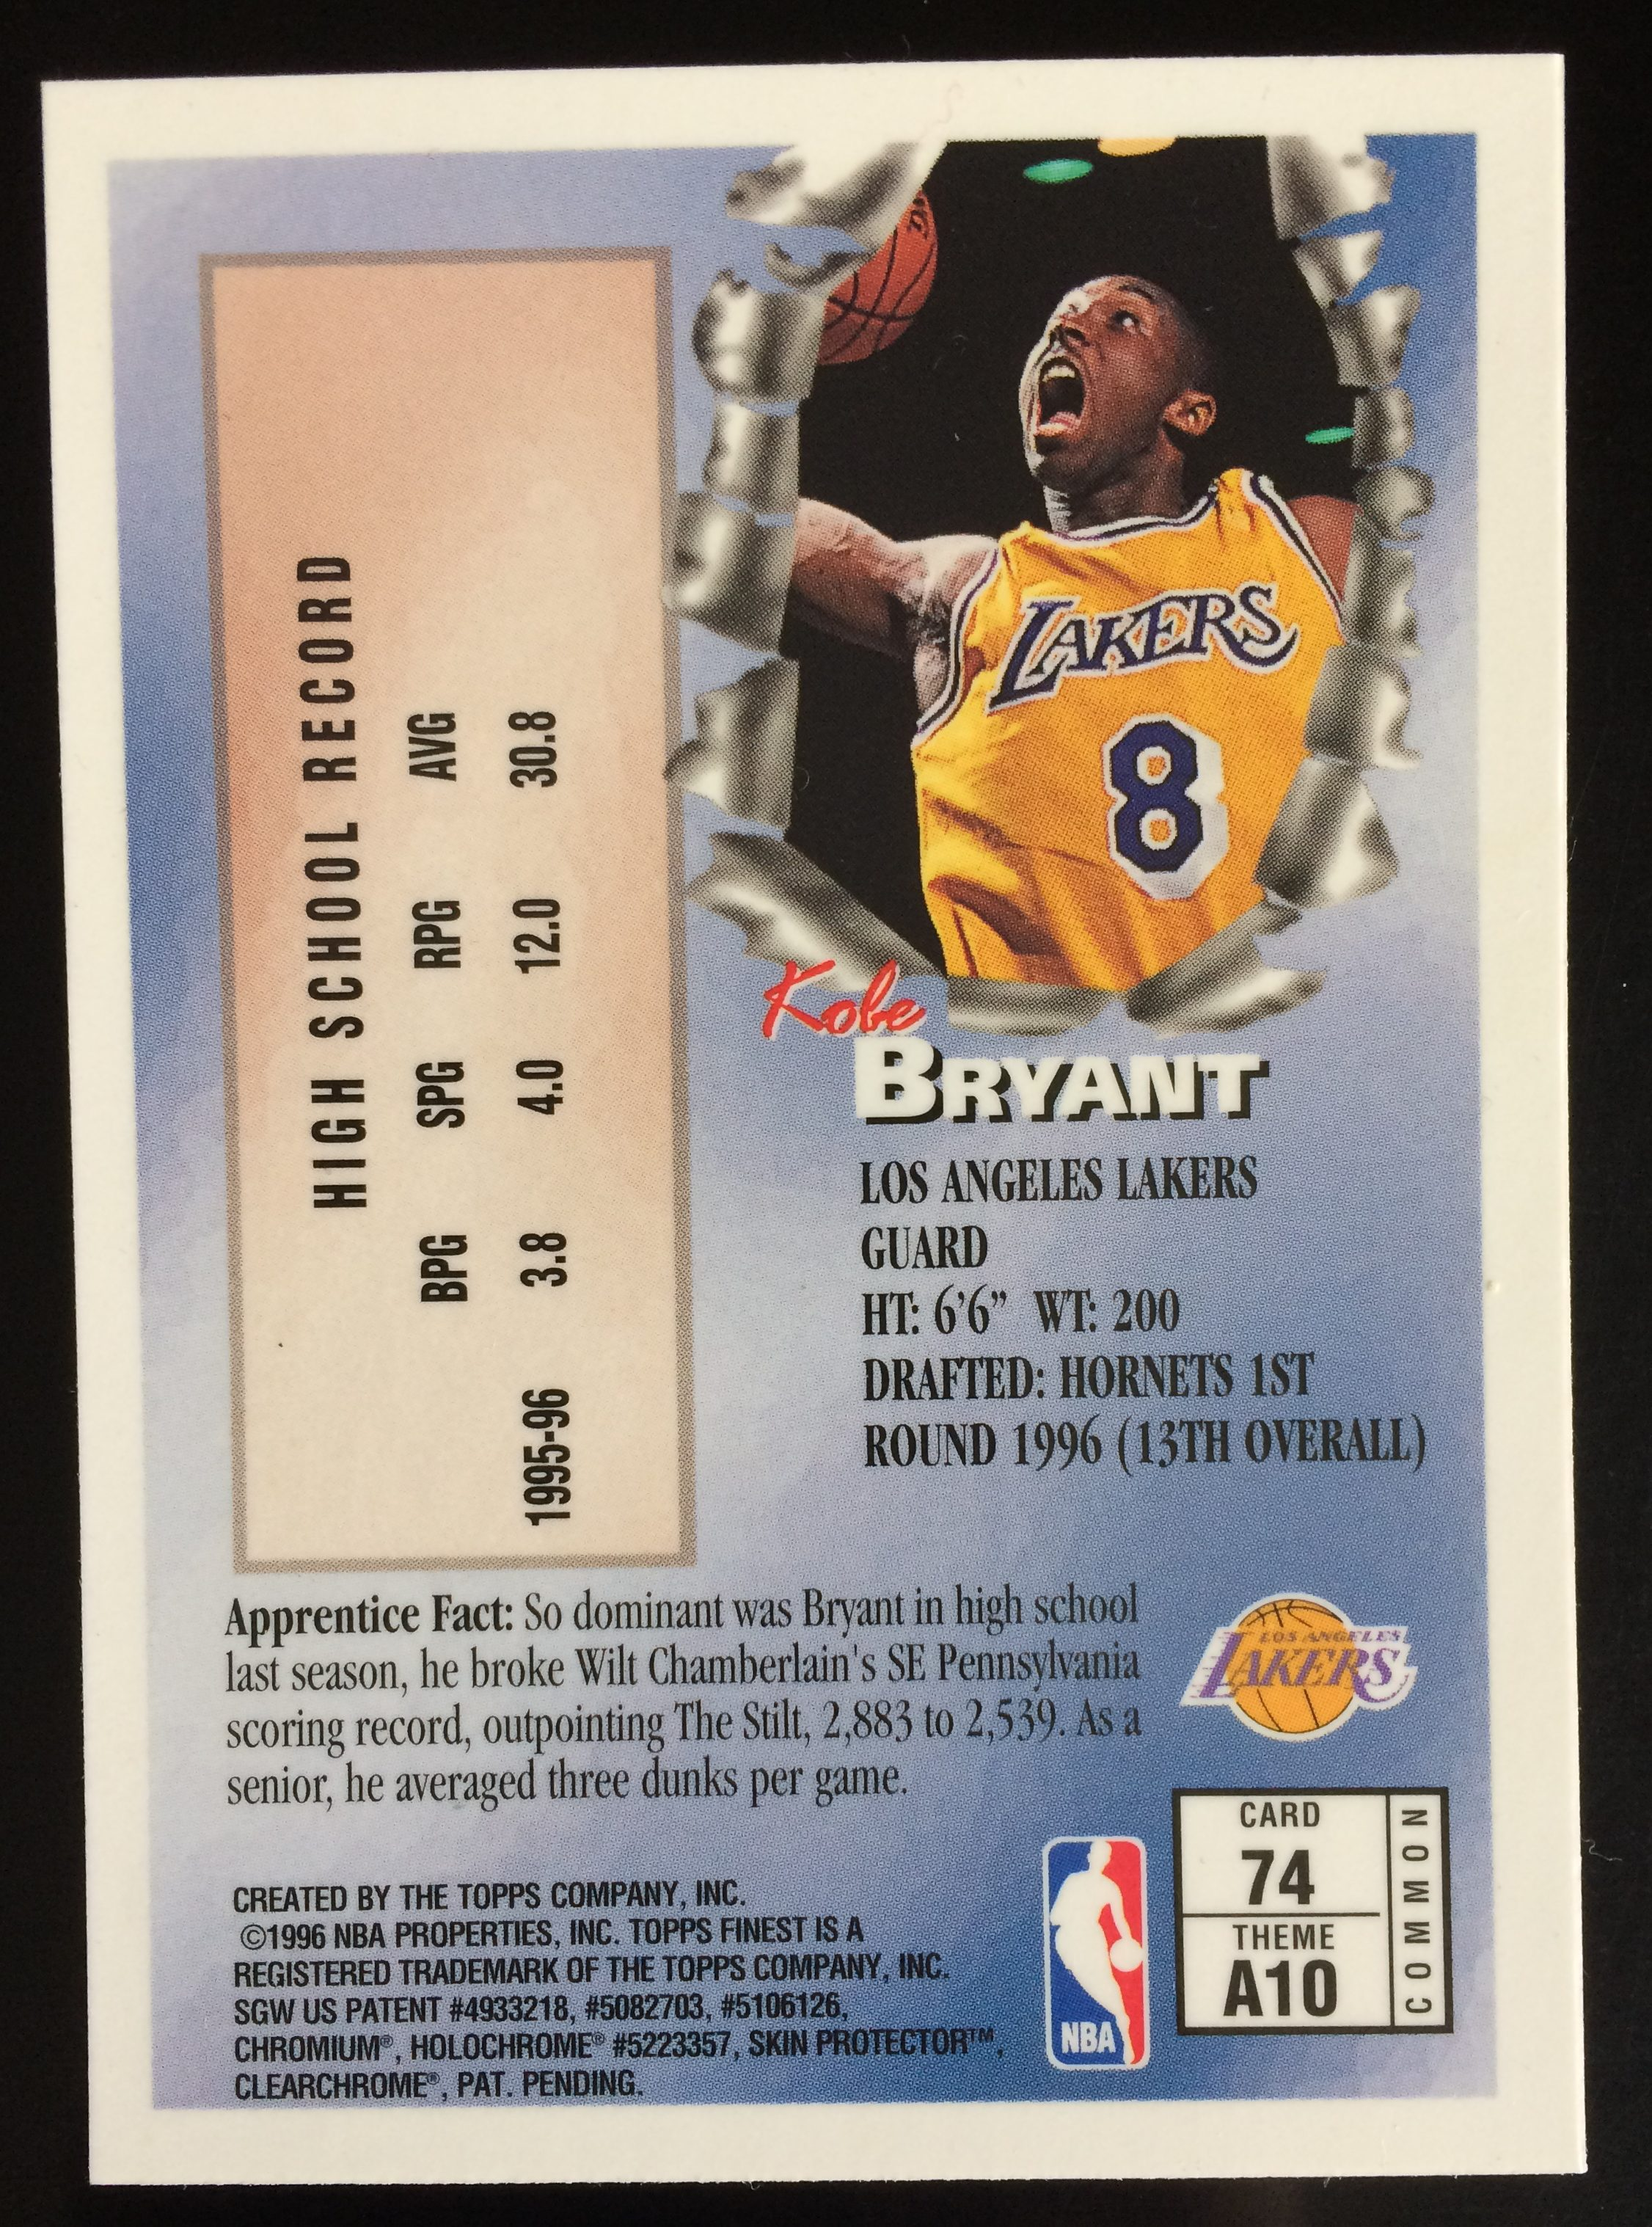 1996 97 Topps Finest 74 Kobe Bryant Rookie Card